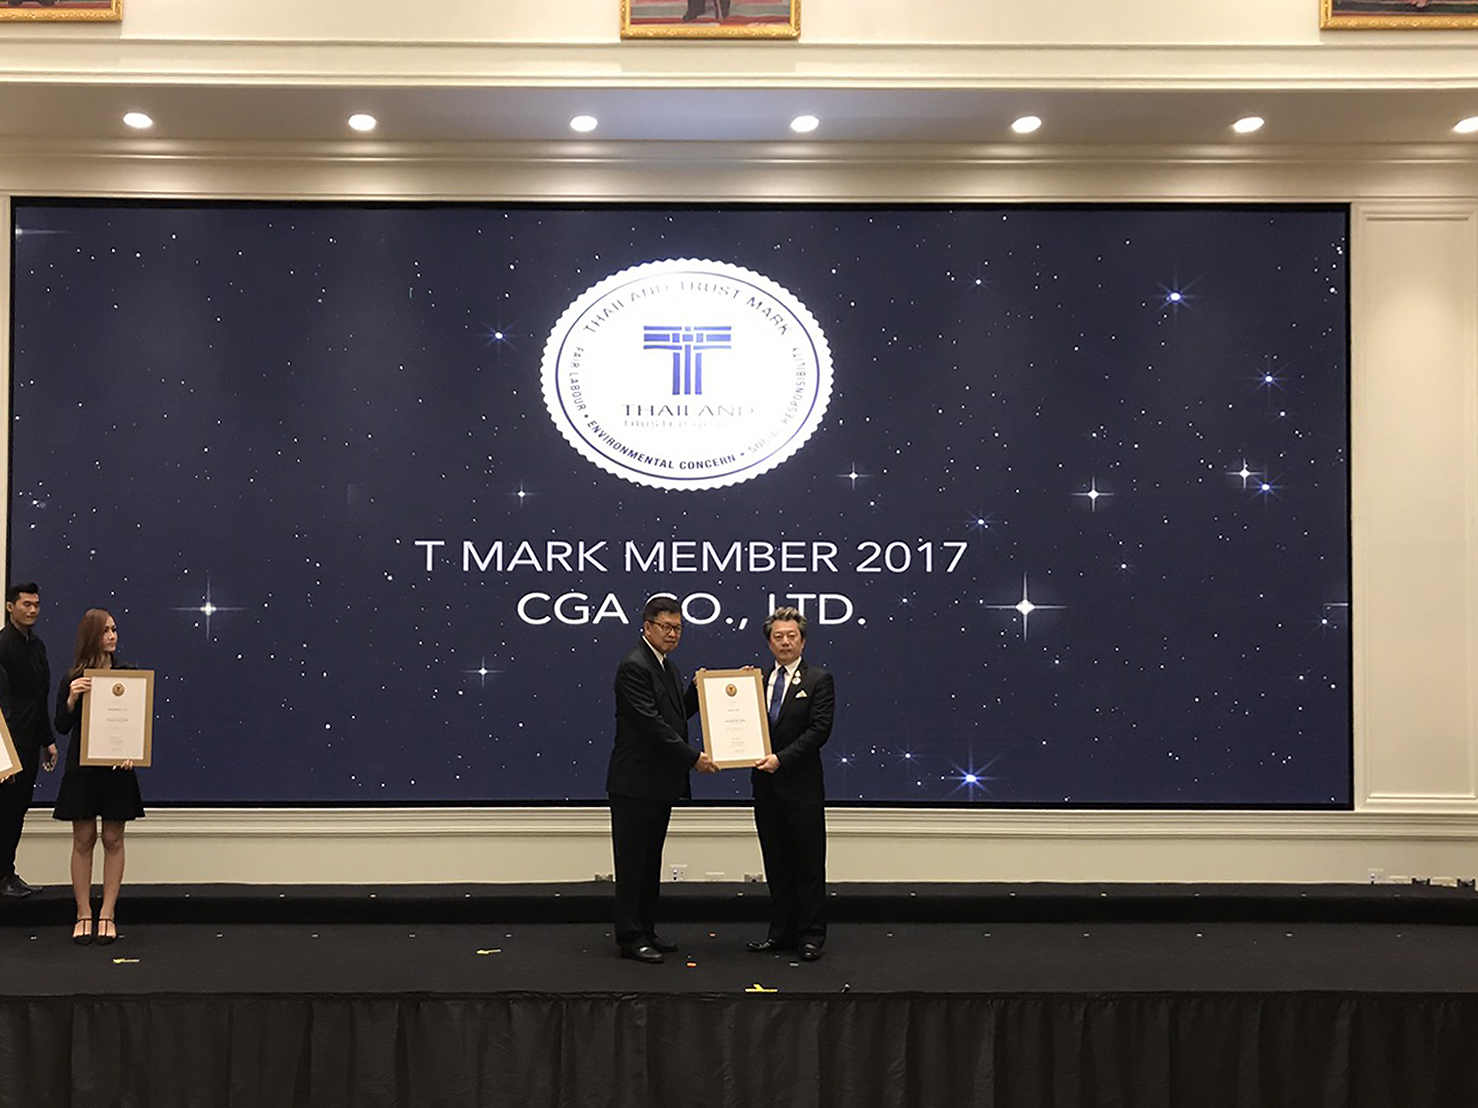 T MARK CEREMONY 2017